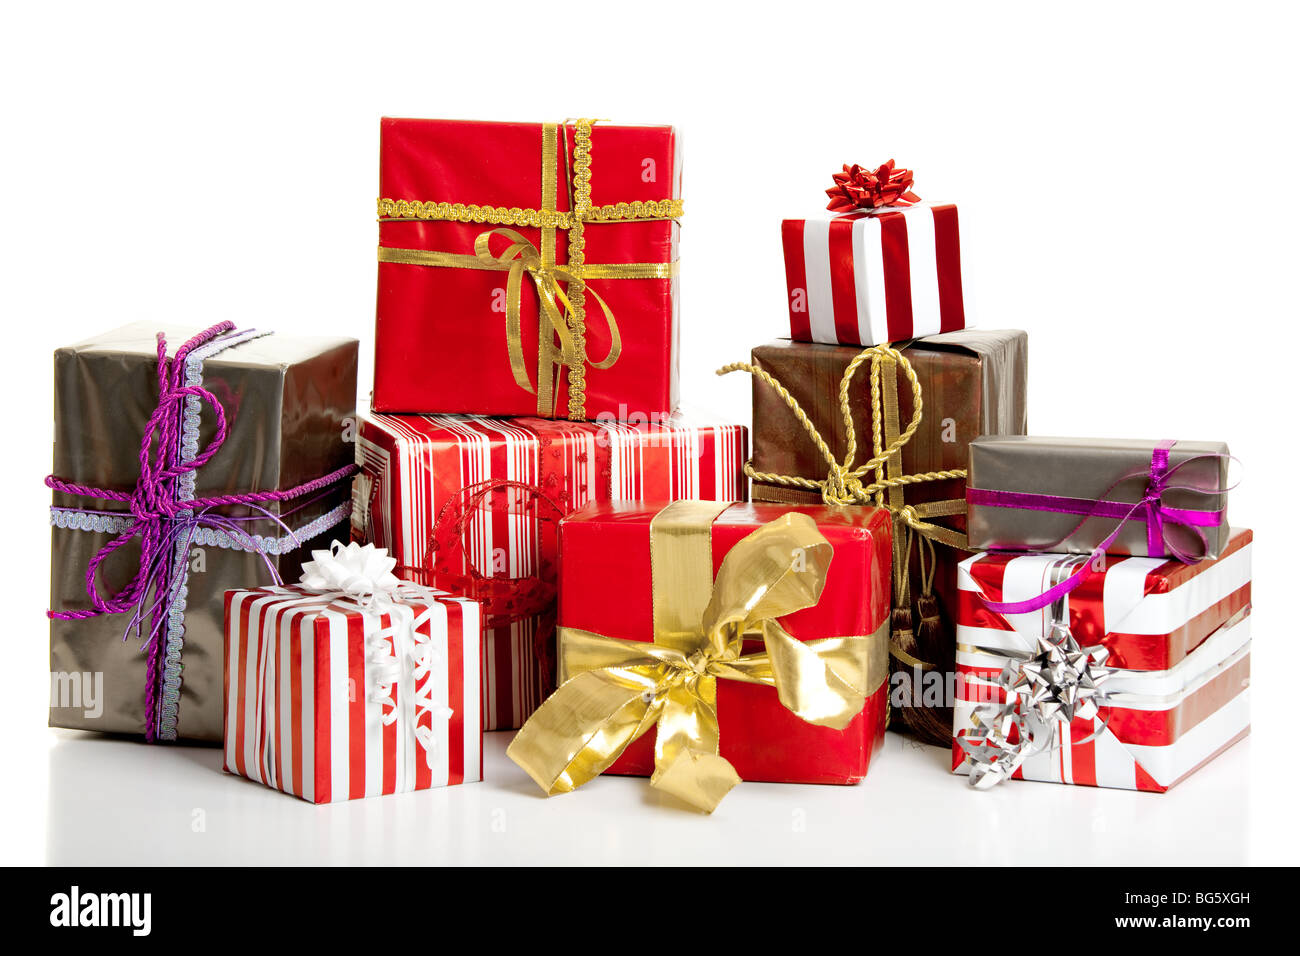 Christmas gifts isolated on a white background - Stock Image